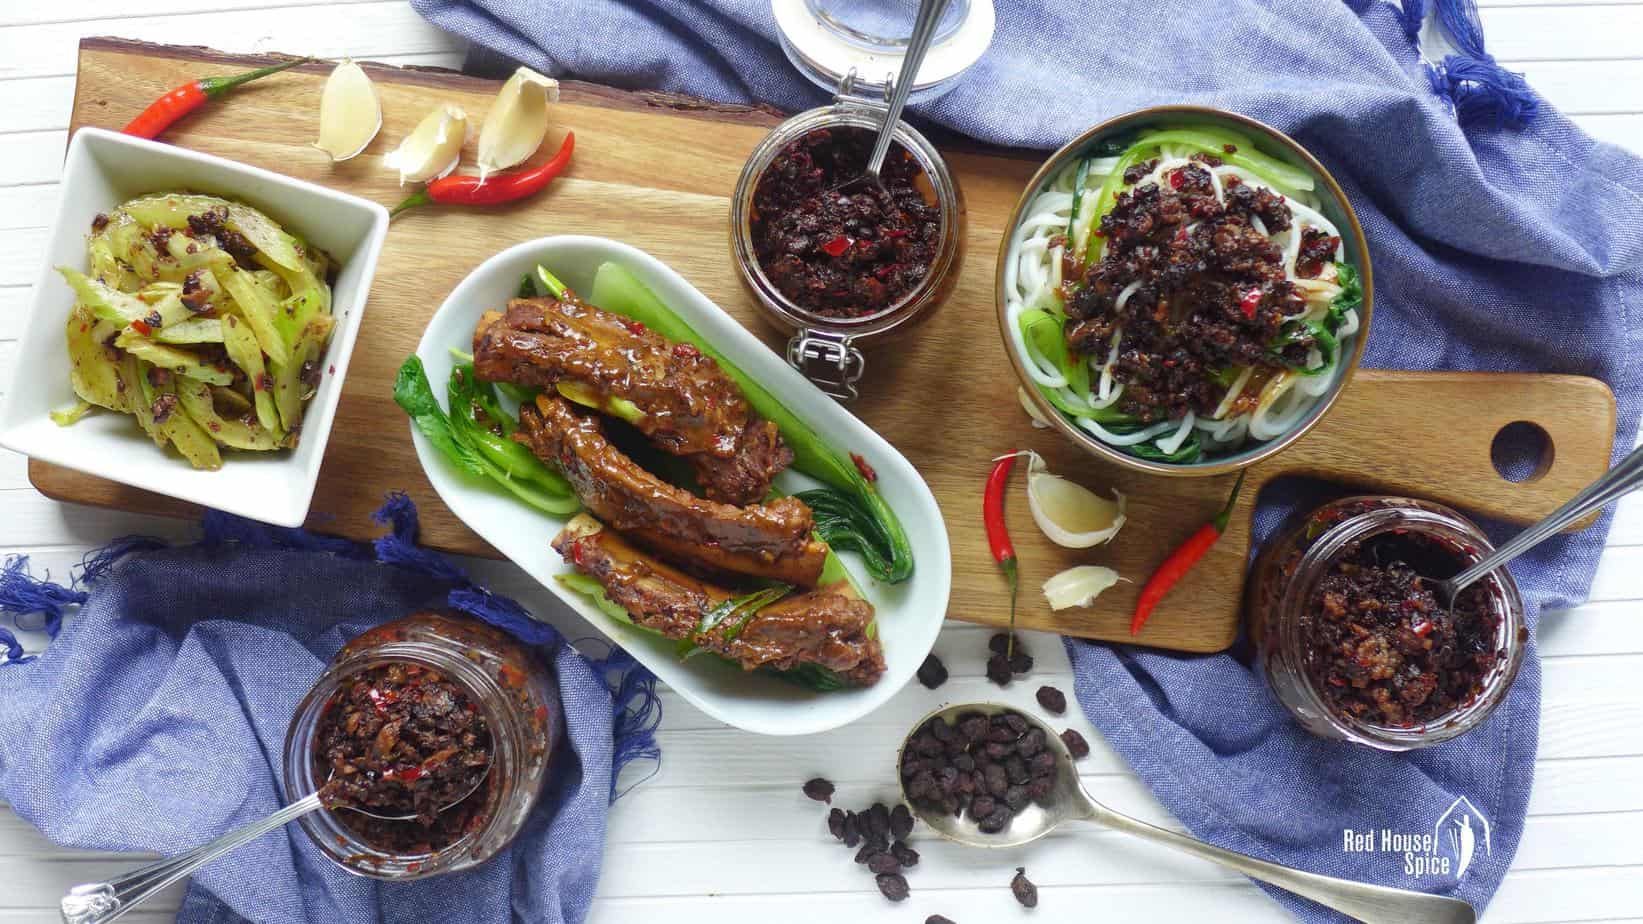 Spicy black bean sauce—three versions (辣豆豉酱)